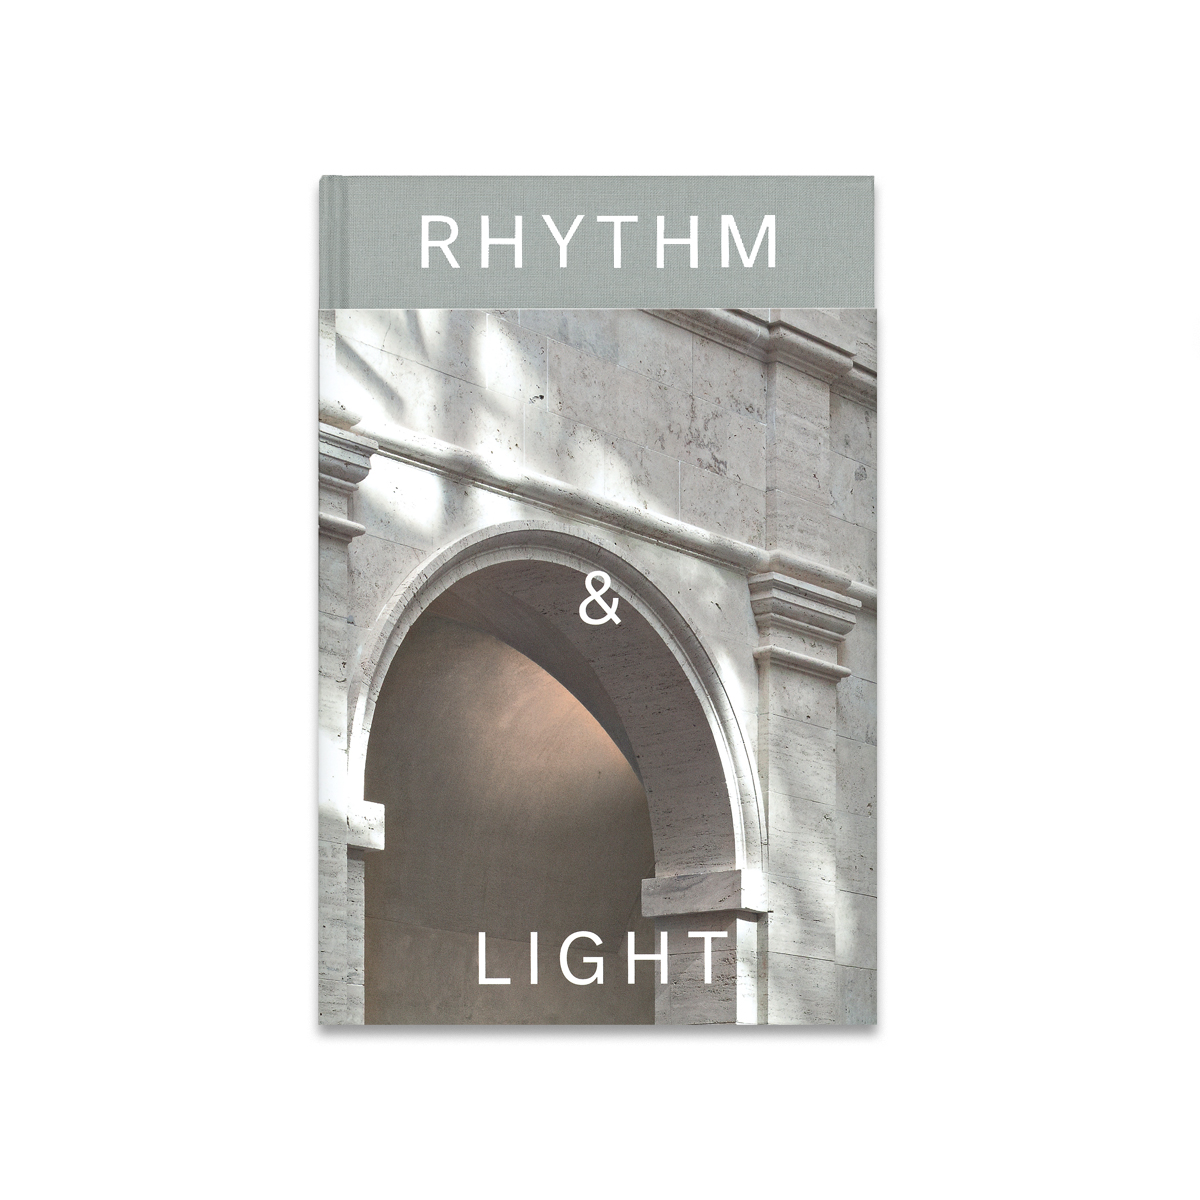 Rhythm & Light, featuring essays by Danielle Carrabino and Mark Carroll, traces the history of the museums' iconic Calderwood Courtyard.